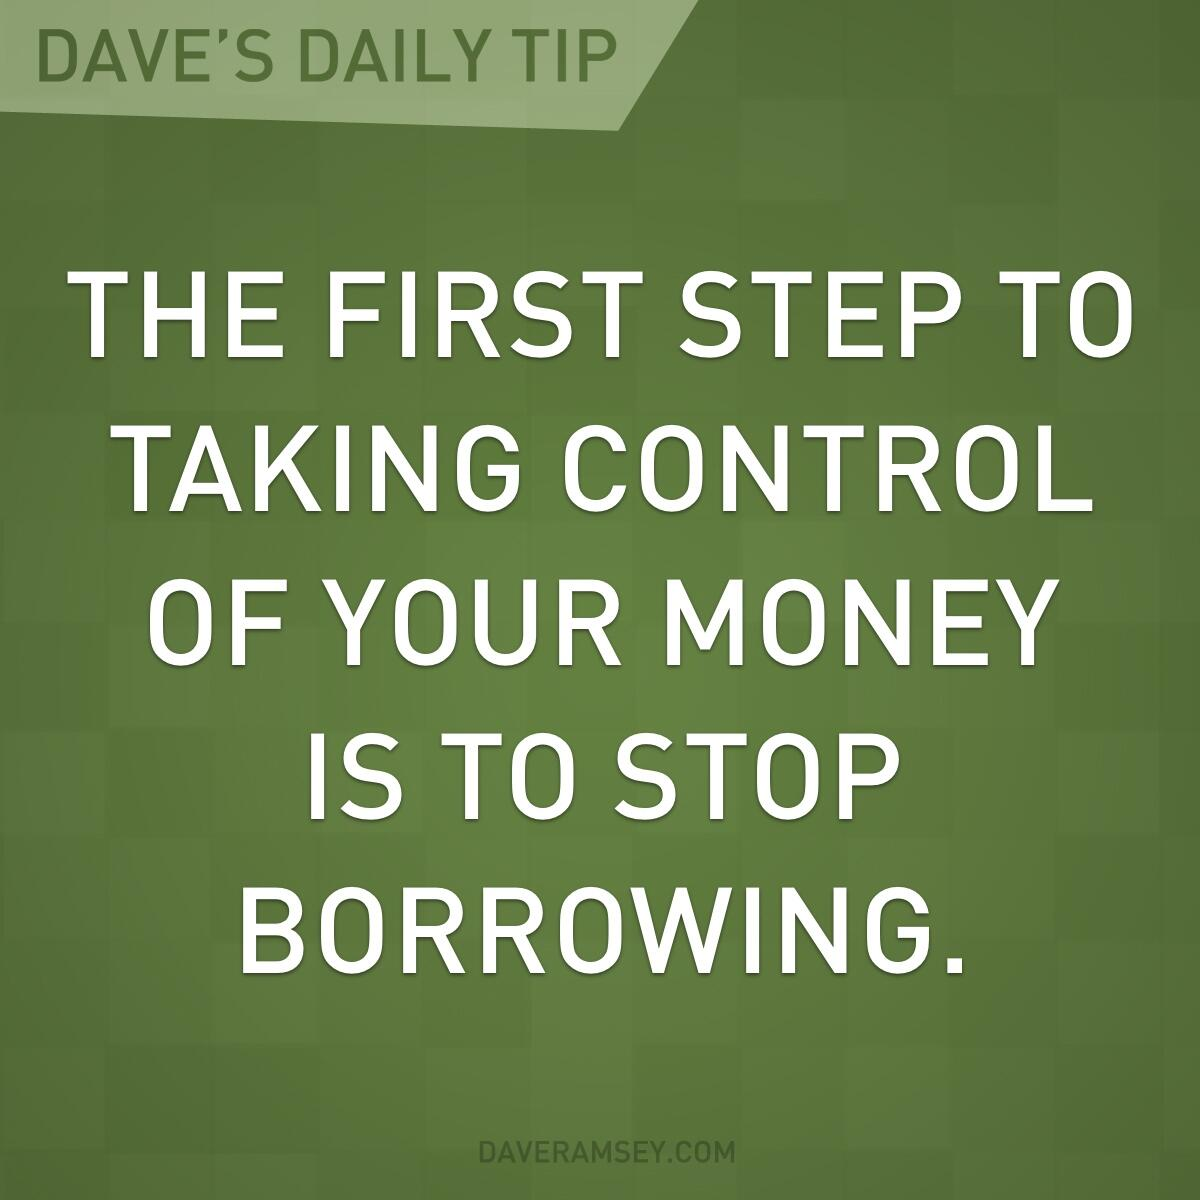 The first step to taking control of your money is to stop borrowing. #DaveDaily http://t.co/n62uqHXWtb